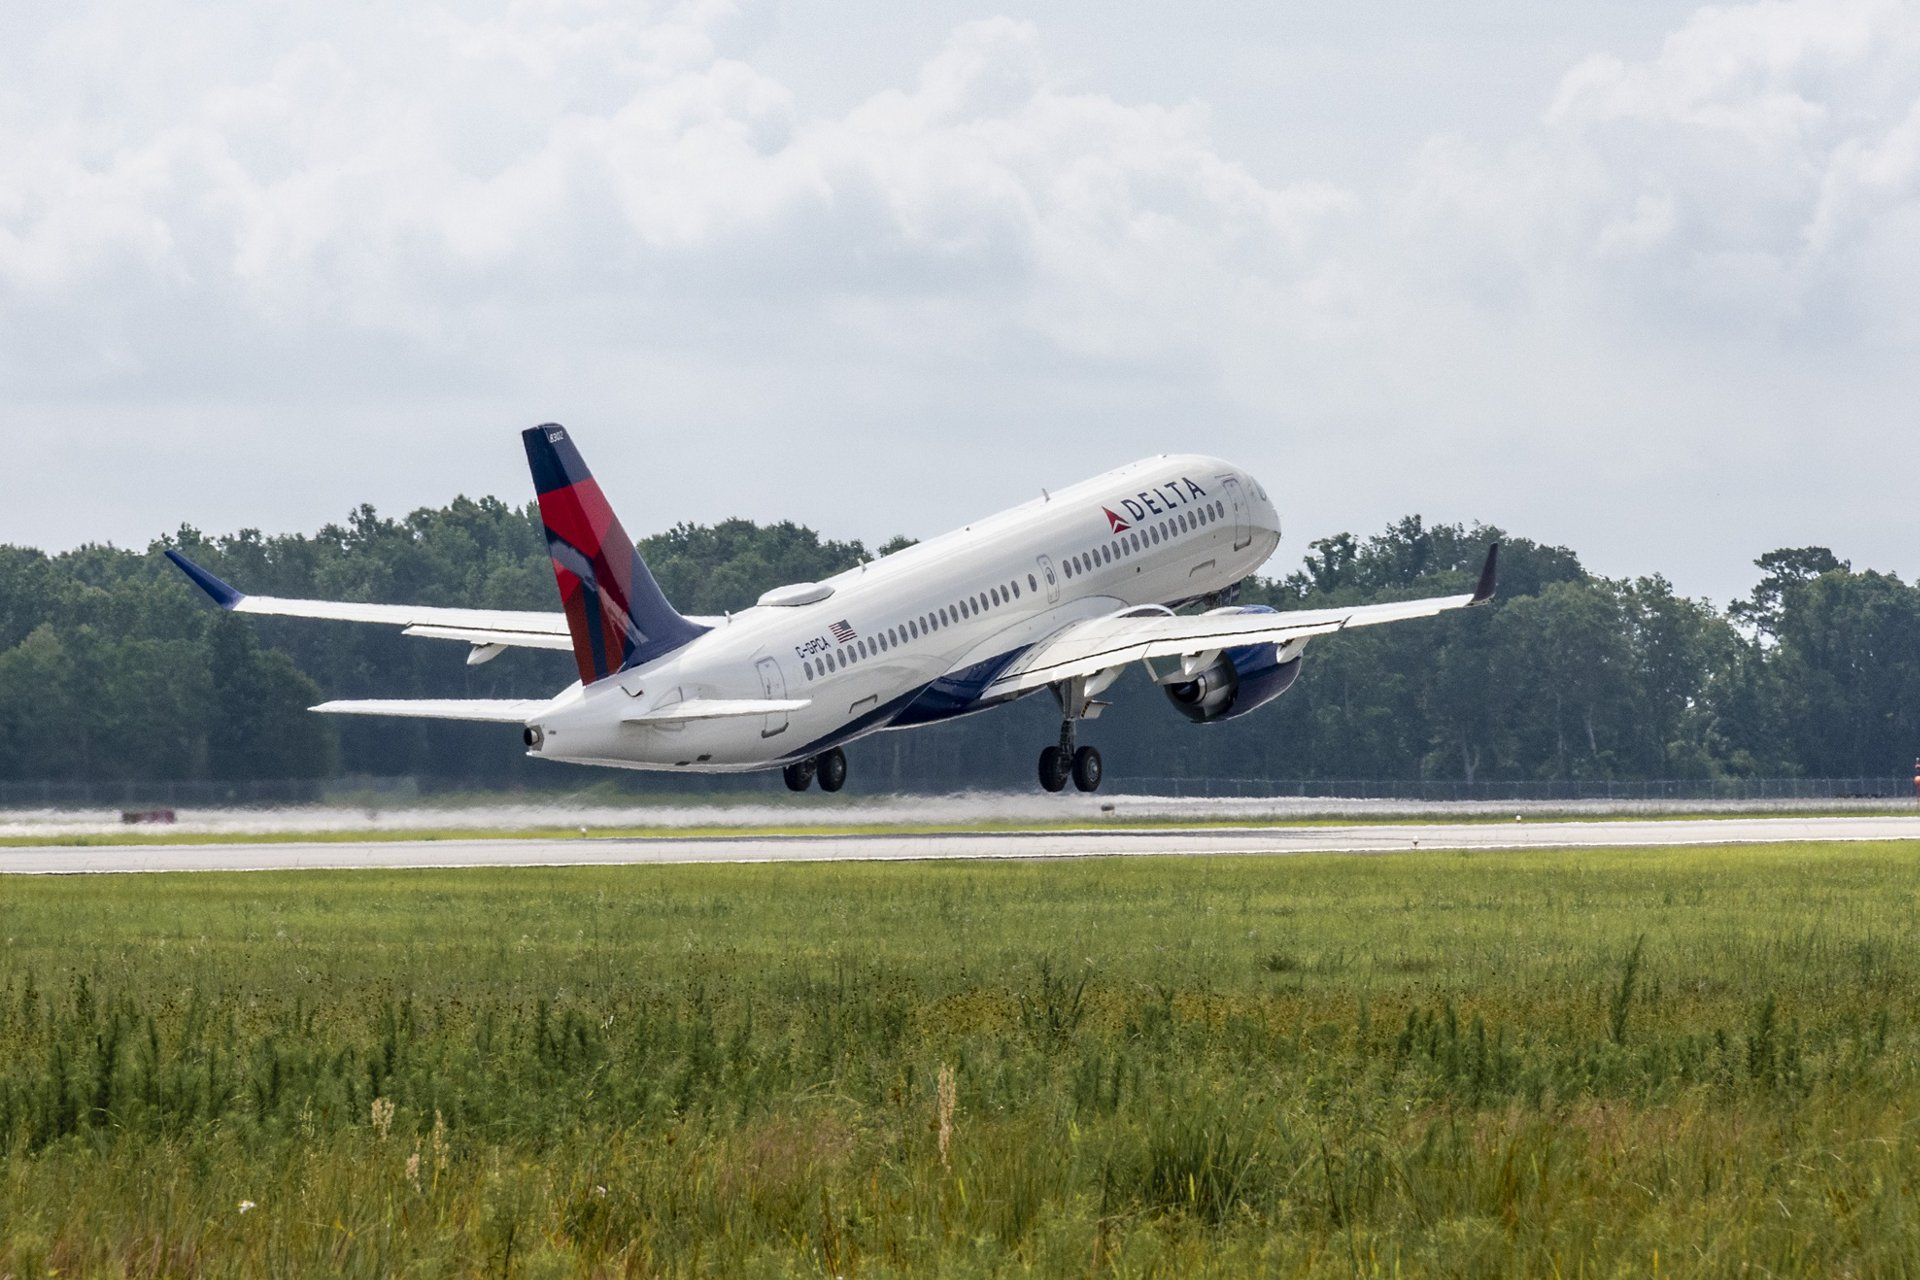 The first U.S.-built A220 commercial aircraft – which was produced at Airbus' final assembly line in Mobile, Alabama – was delivered to U.S. operator Delta Air Lines in October 2020